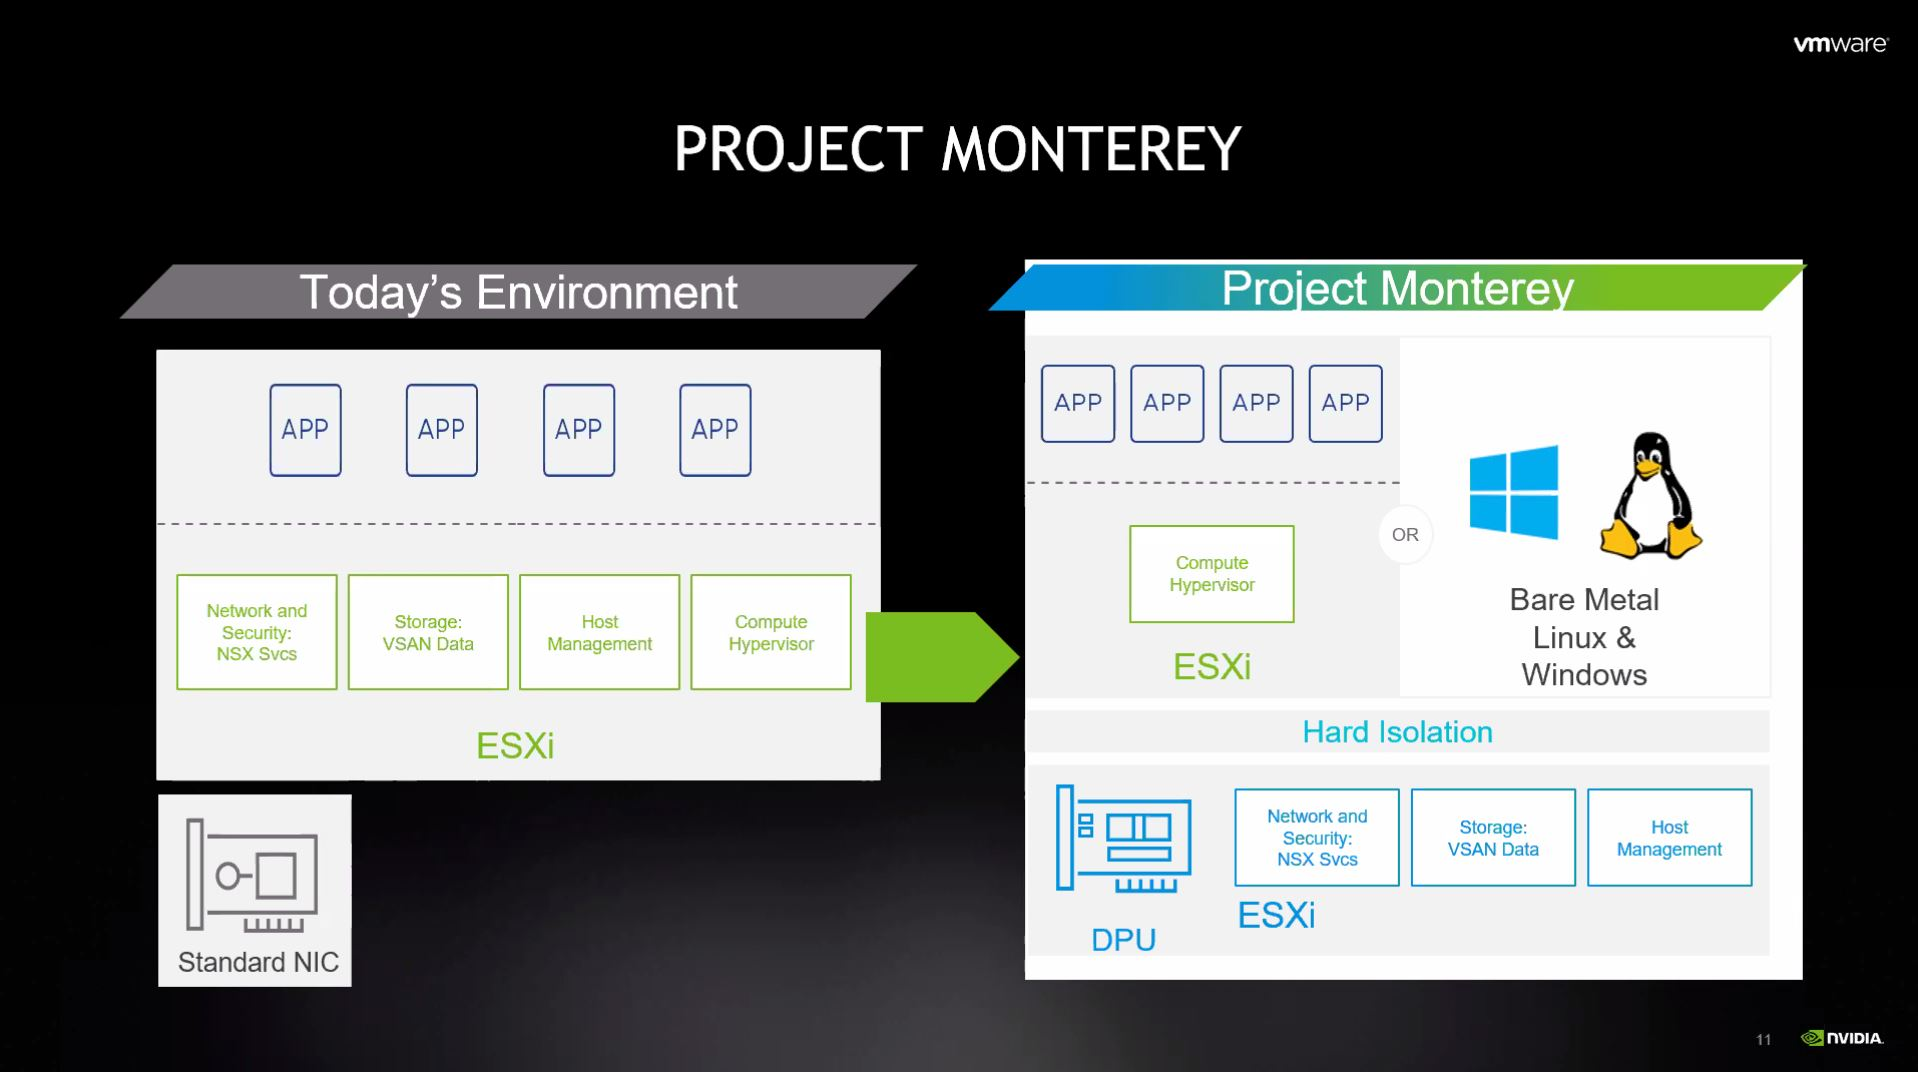 VMware VMworld 2020 Project Monterey DPU With NVIDIA